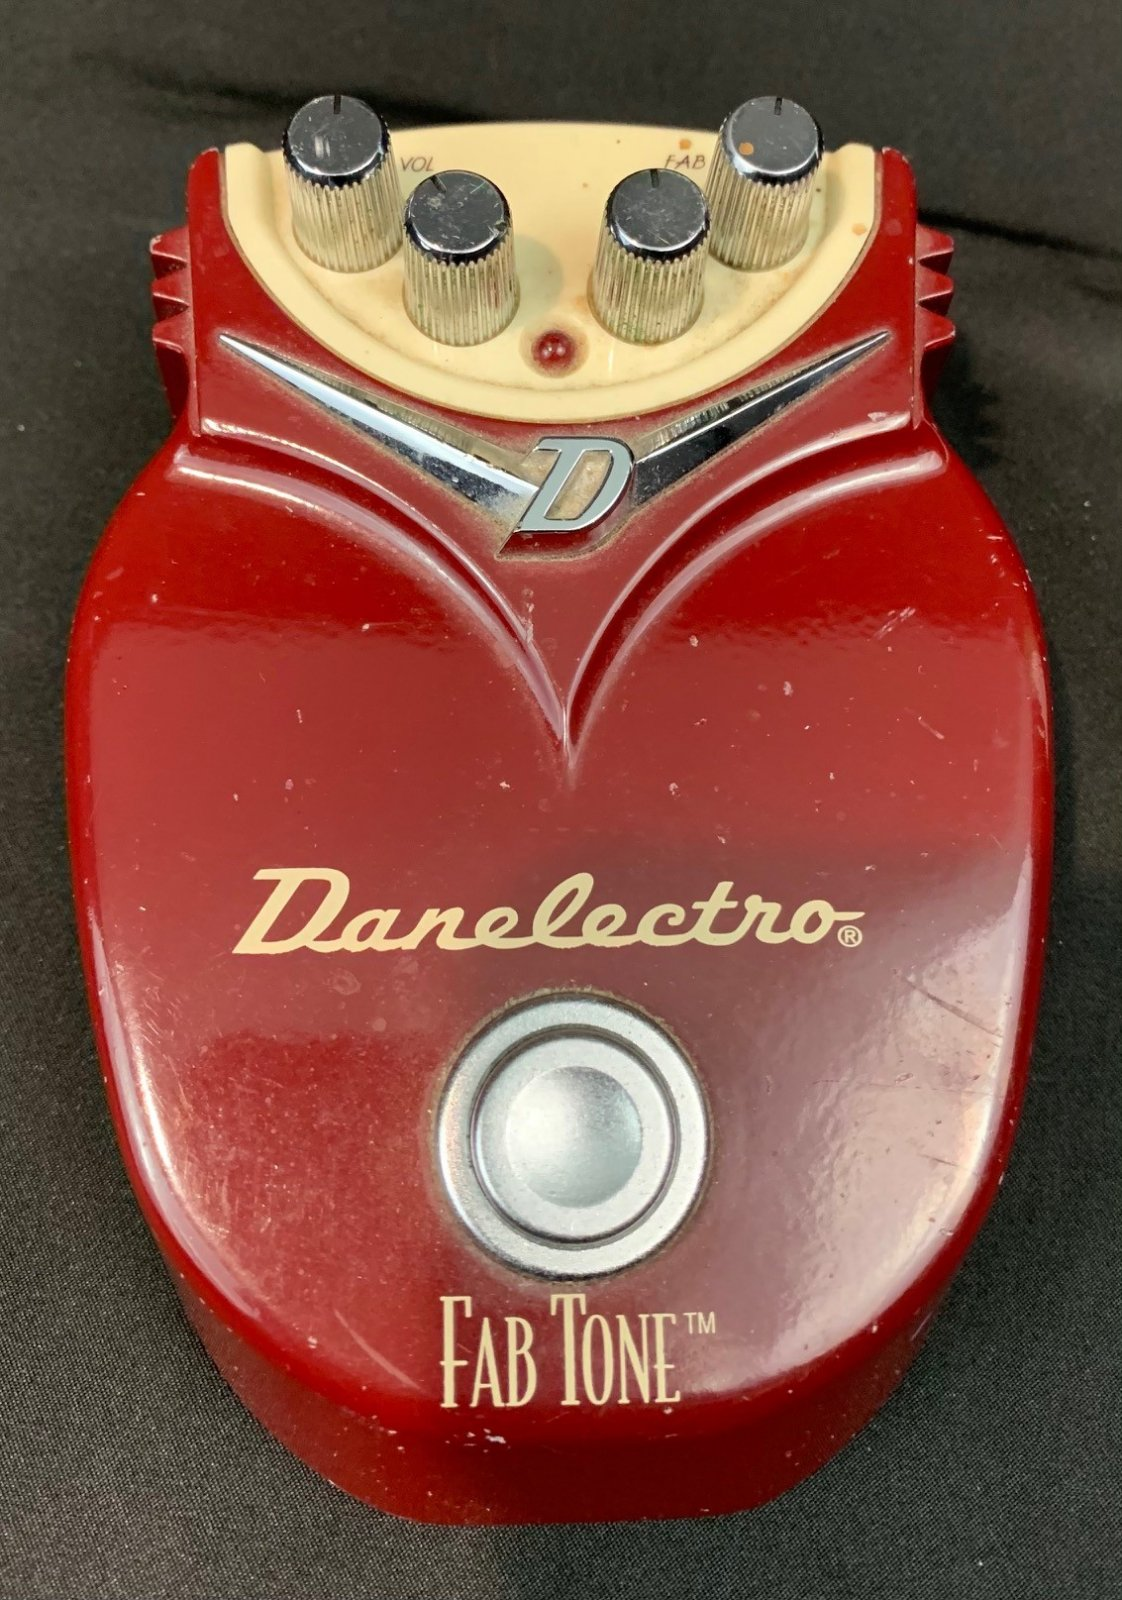 Used Danelectro Fabtone Pedal from Third Rock Music Center